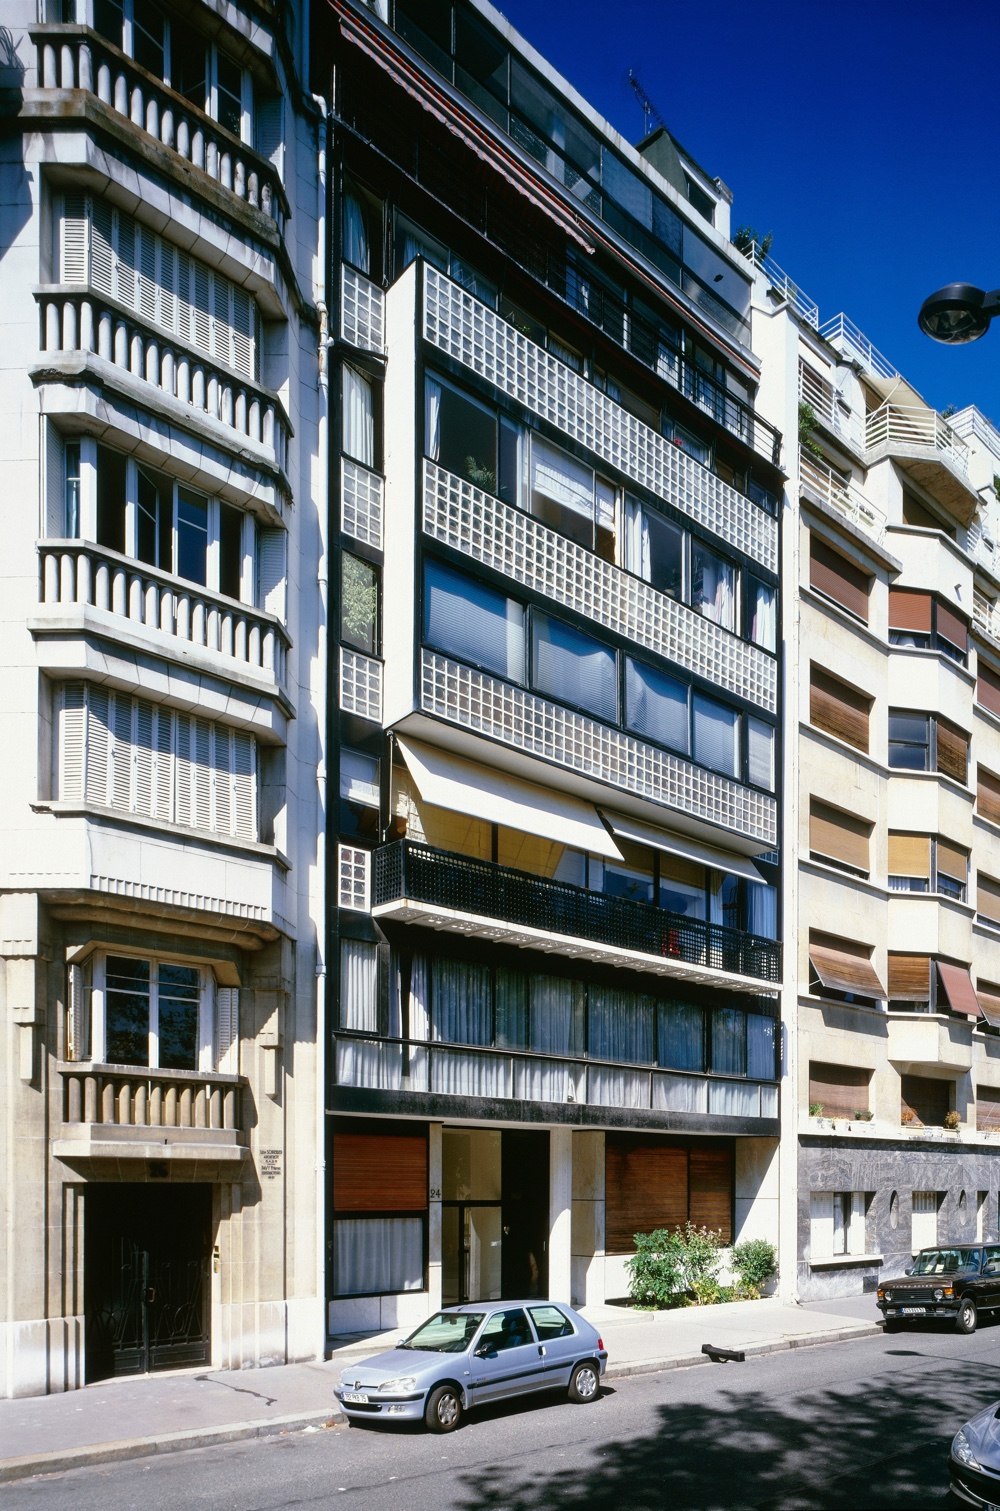 Immeuble locatif à la porte Molitor, Paris, France, 1931 - 1934. Photo by Oliver Martin-Gambier © FLC/ADAGP.